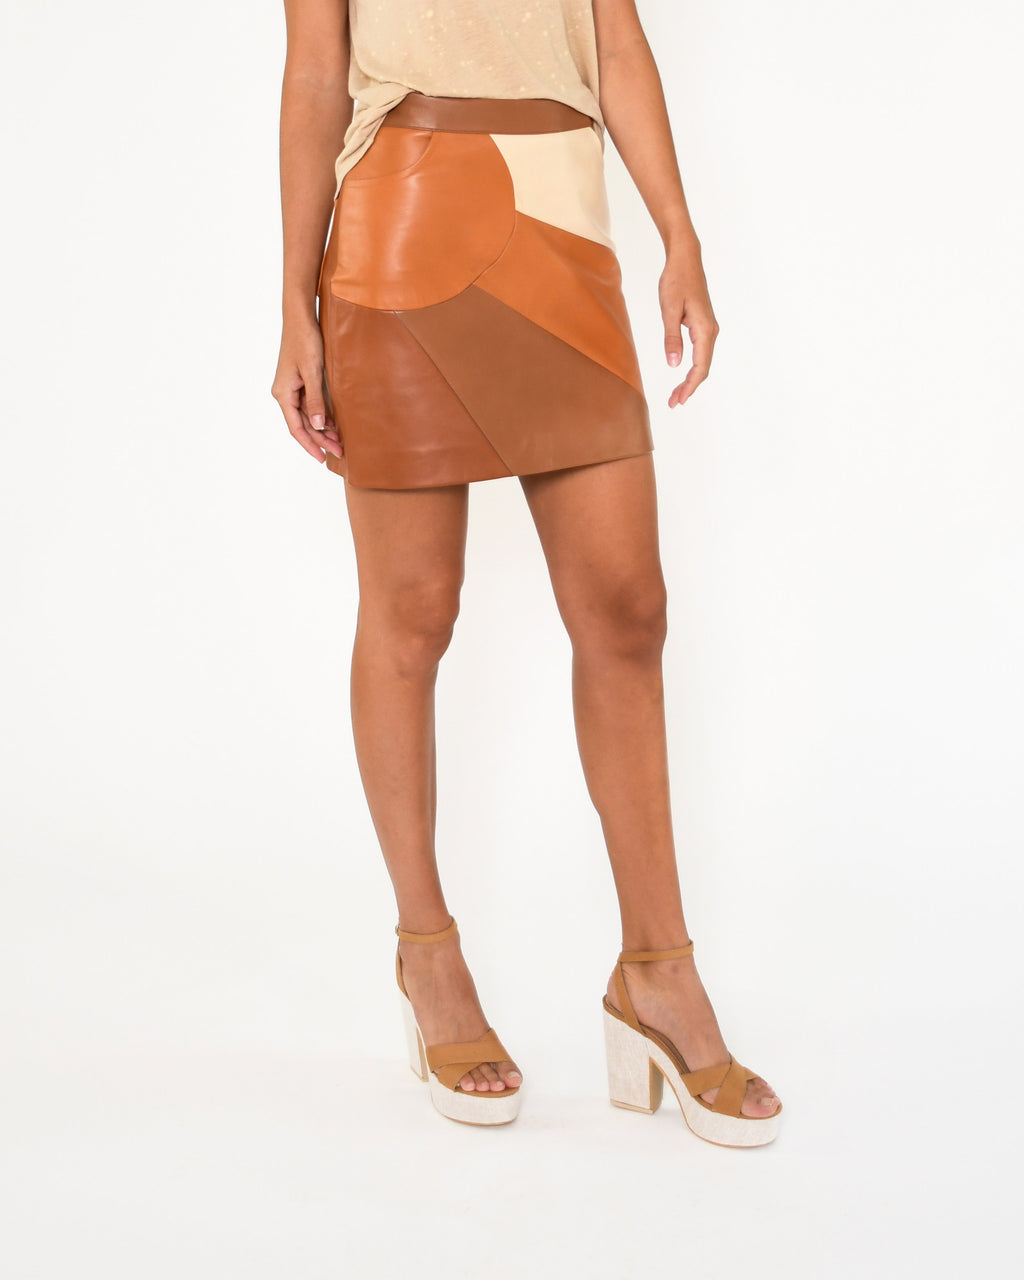 CS18795 - LEATHER PATCHWORK SKIRT - bottoms - skirts - Our patchwork leather mini skirt is designed in buttery leather in rich brown and beiges hues. Pieces are stitched together to create a sunset silhouette along the right hand pocket. Back zipper for closure. Add 1 line break Stylist Tip: Pair with a lightweight sweater and tall brown boots.